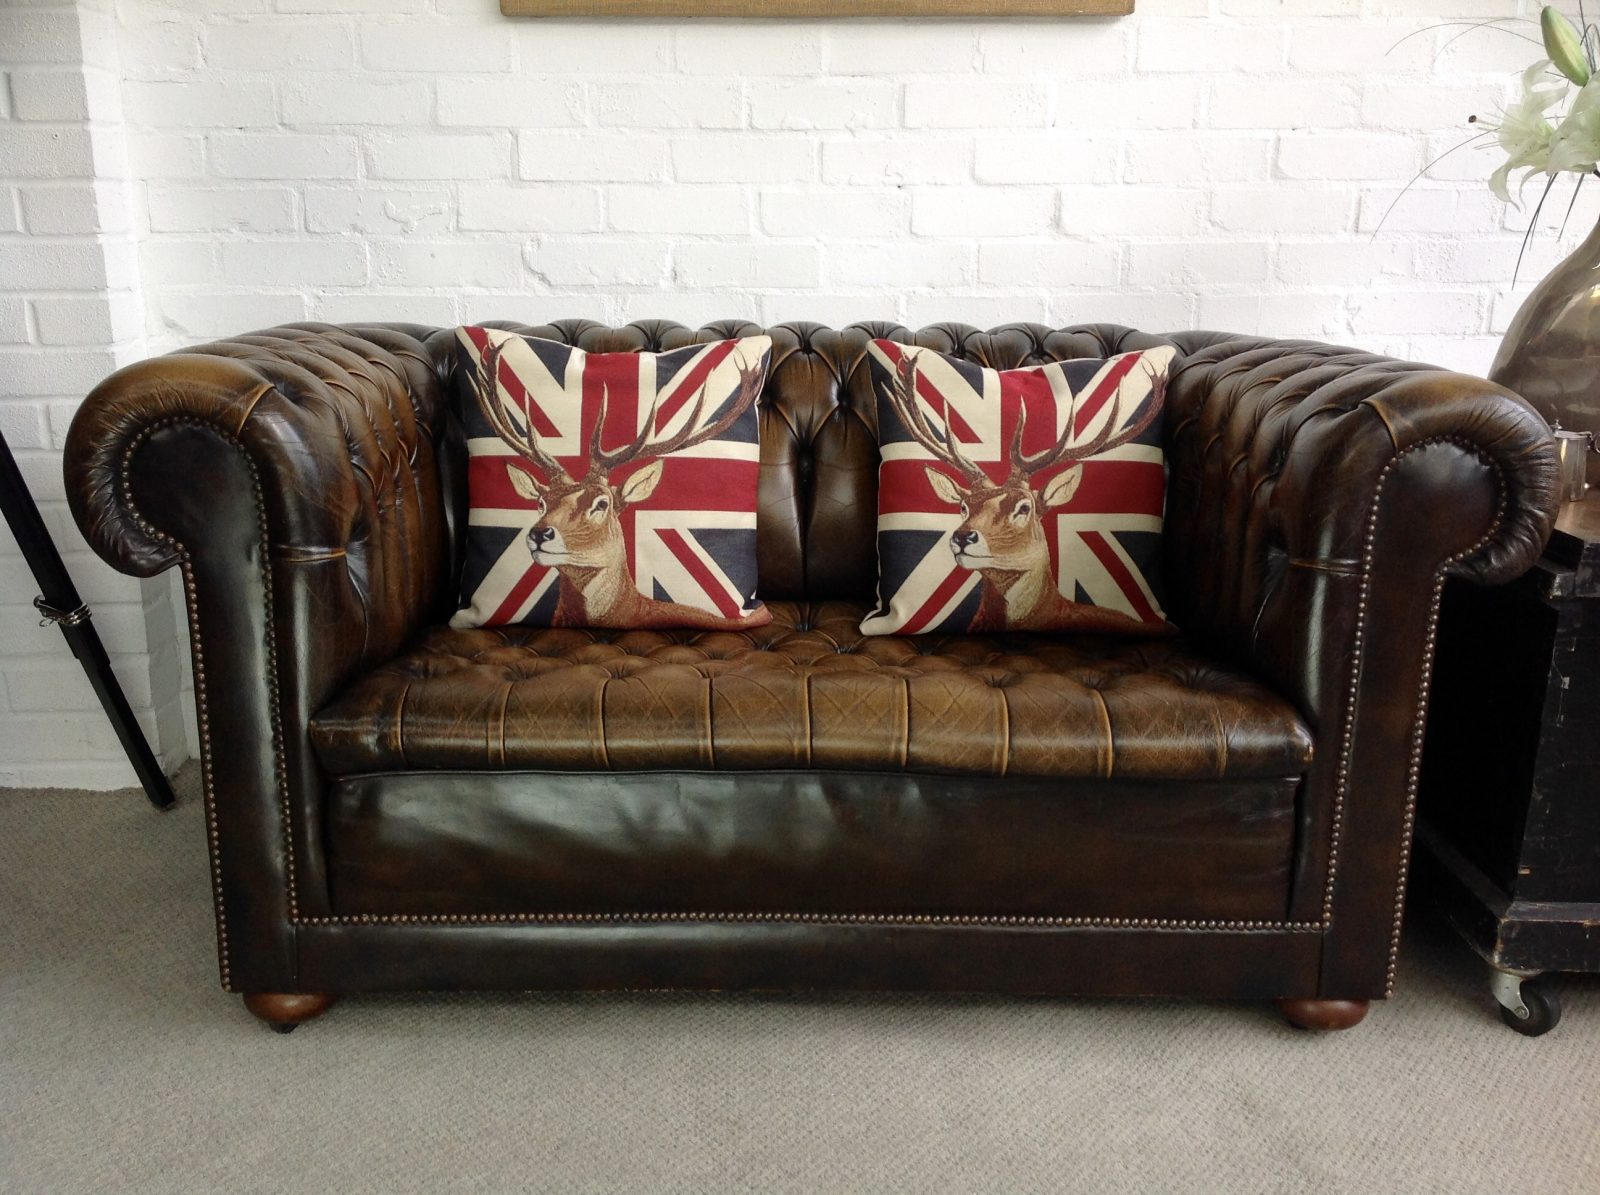 Stunning Vintage Chesterfield Sofa.